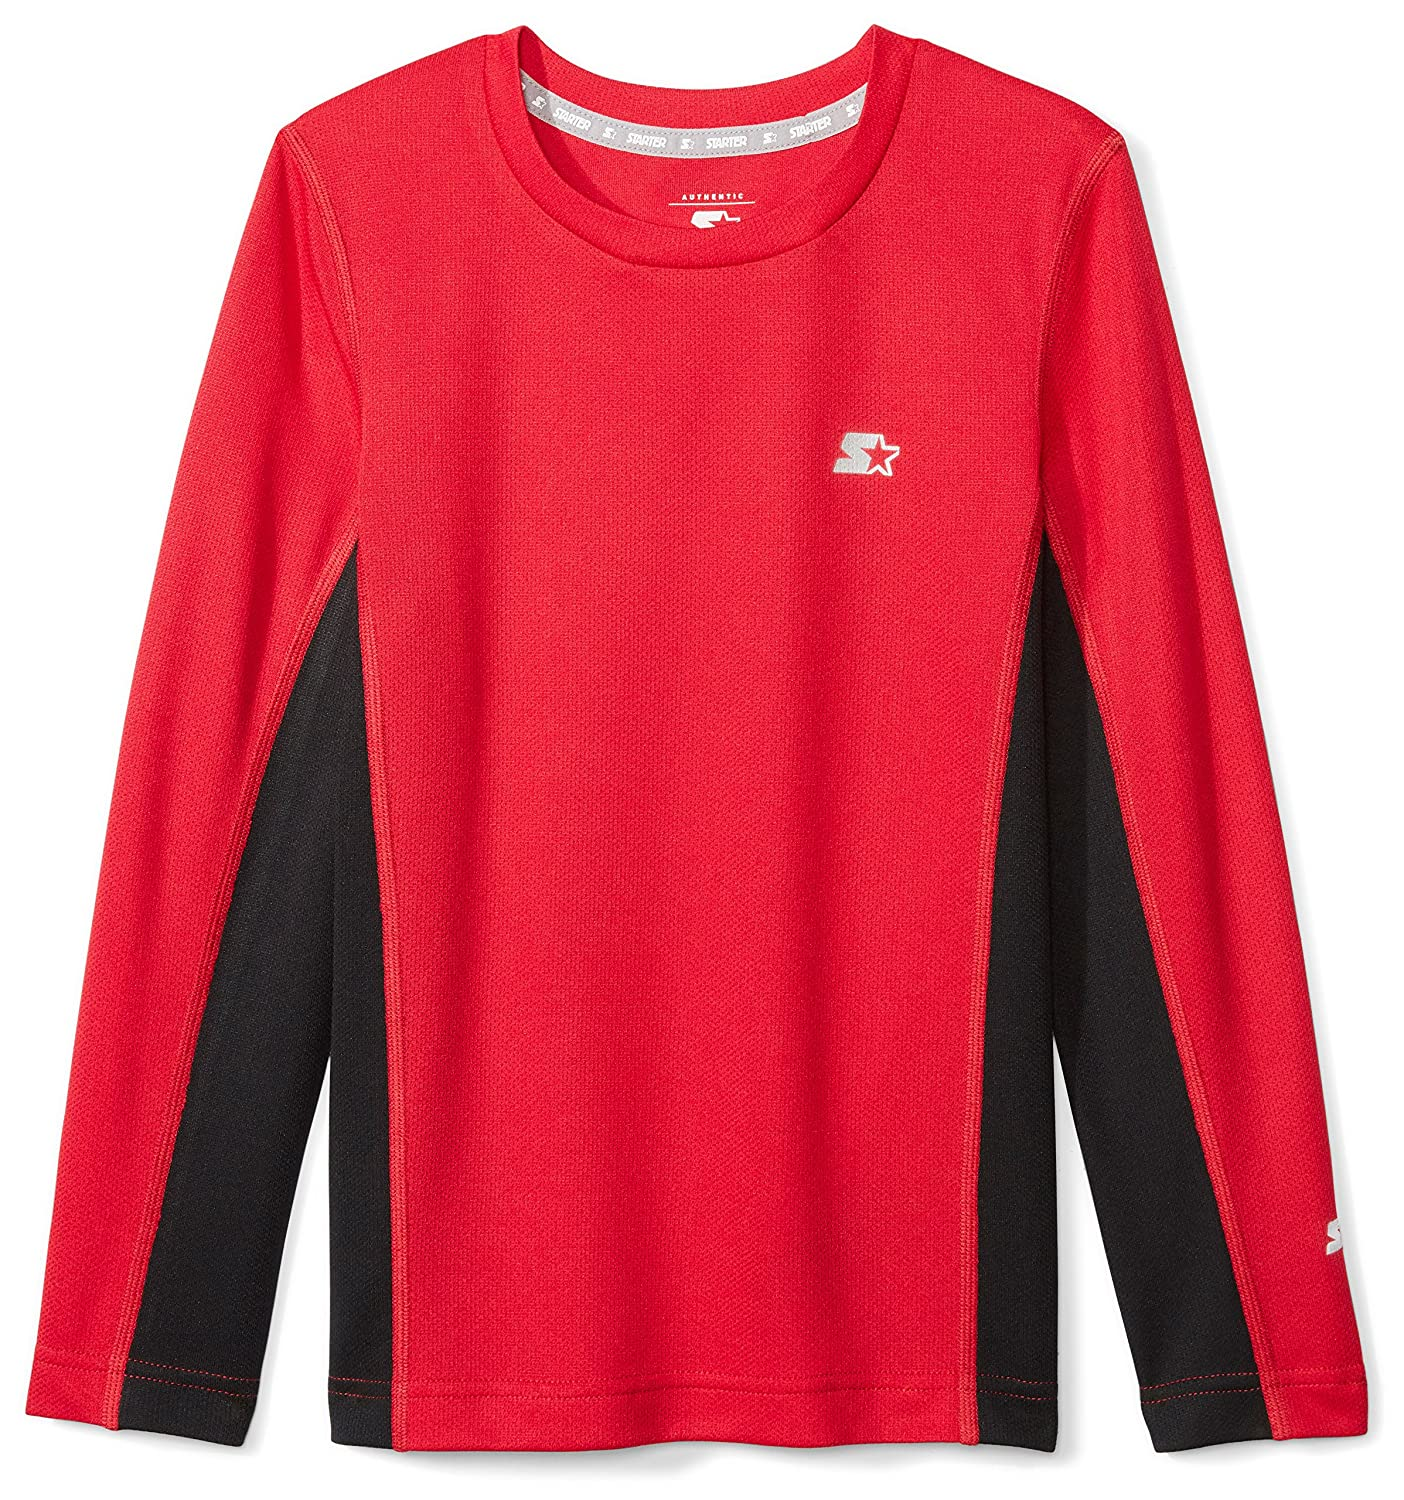 Starter Boys' Long Sleeve Colorblocked Tech T-Shirt, Amazon Exclusive S17FBT02